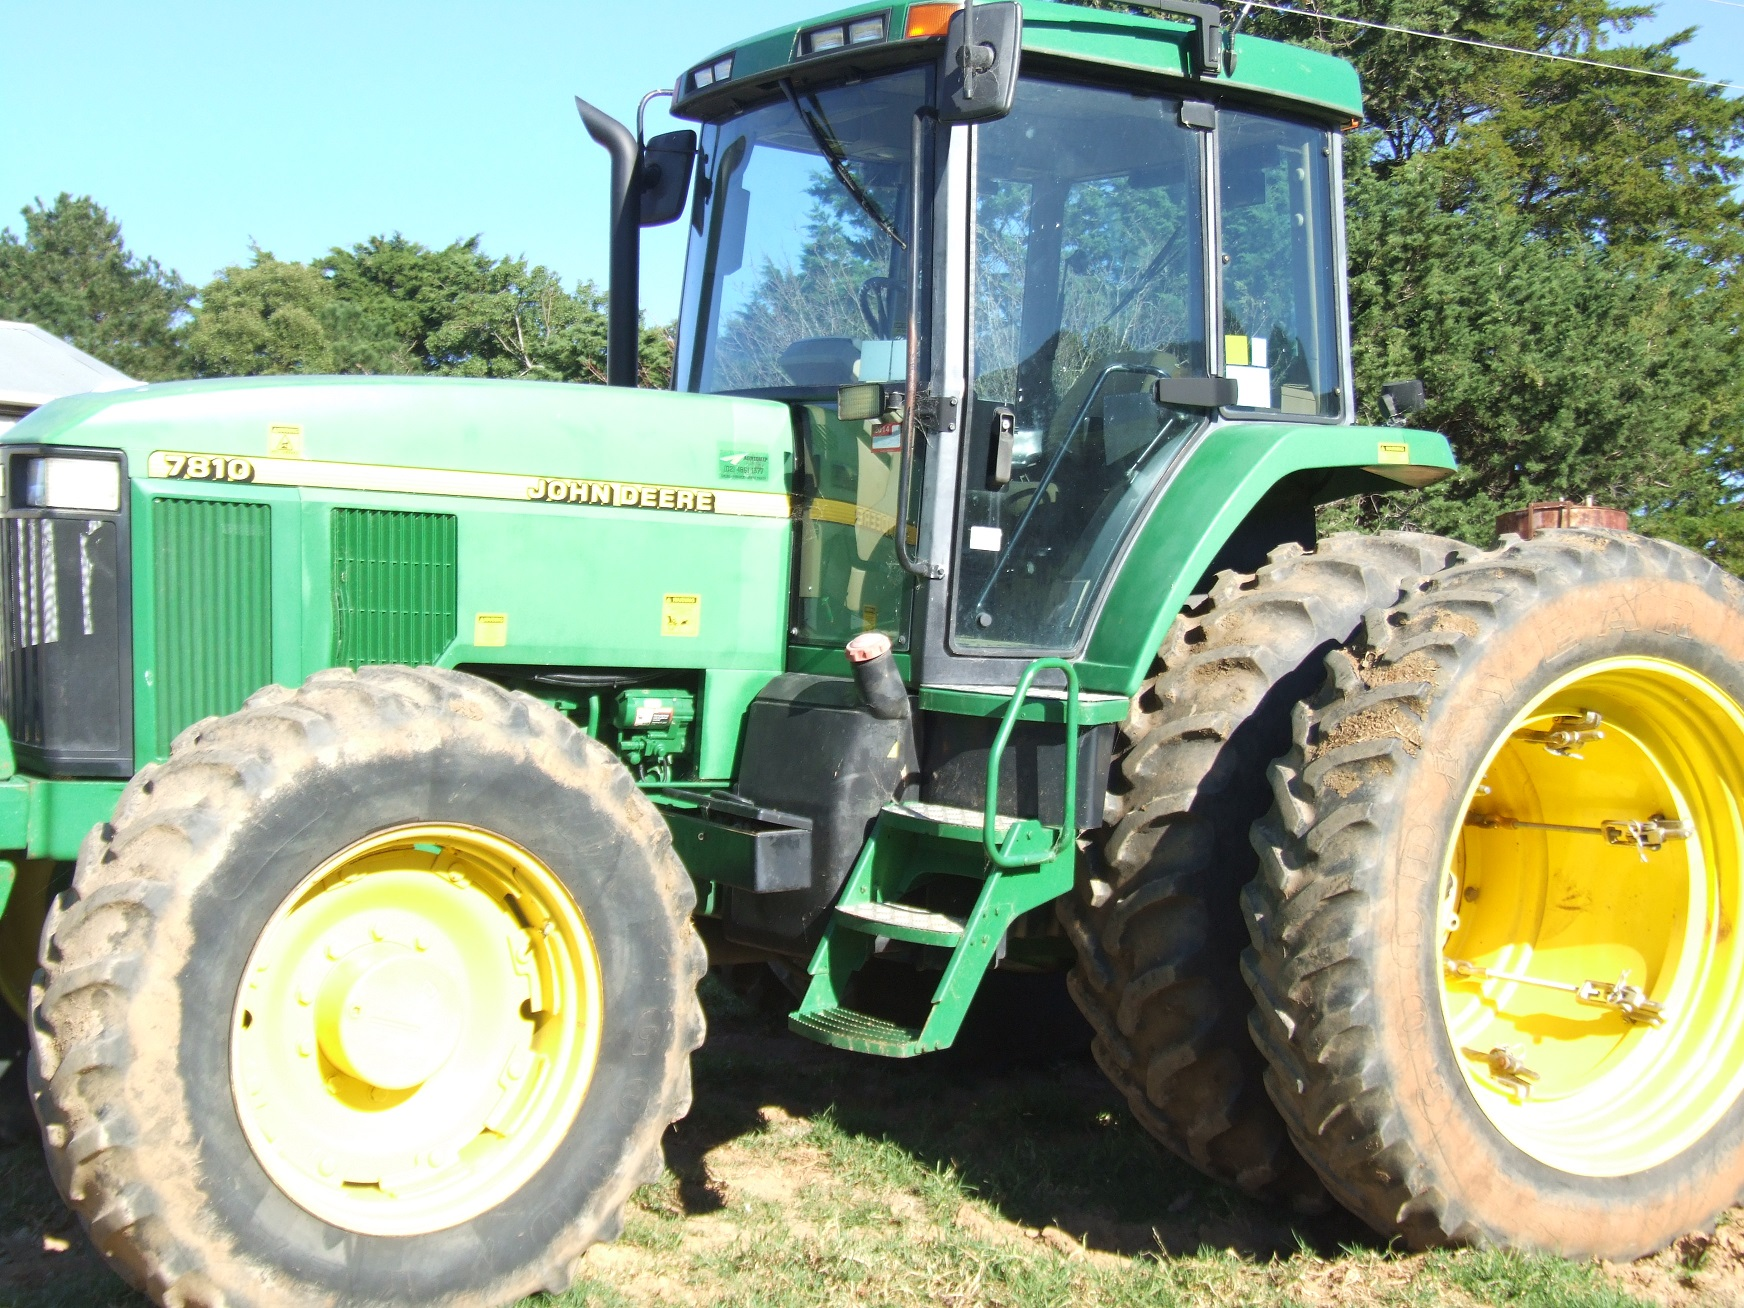 Oliver S Tractor Dual Wheels : Dual wheel john deere tractor price drop machinery